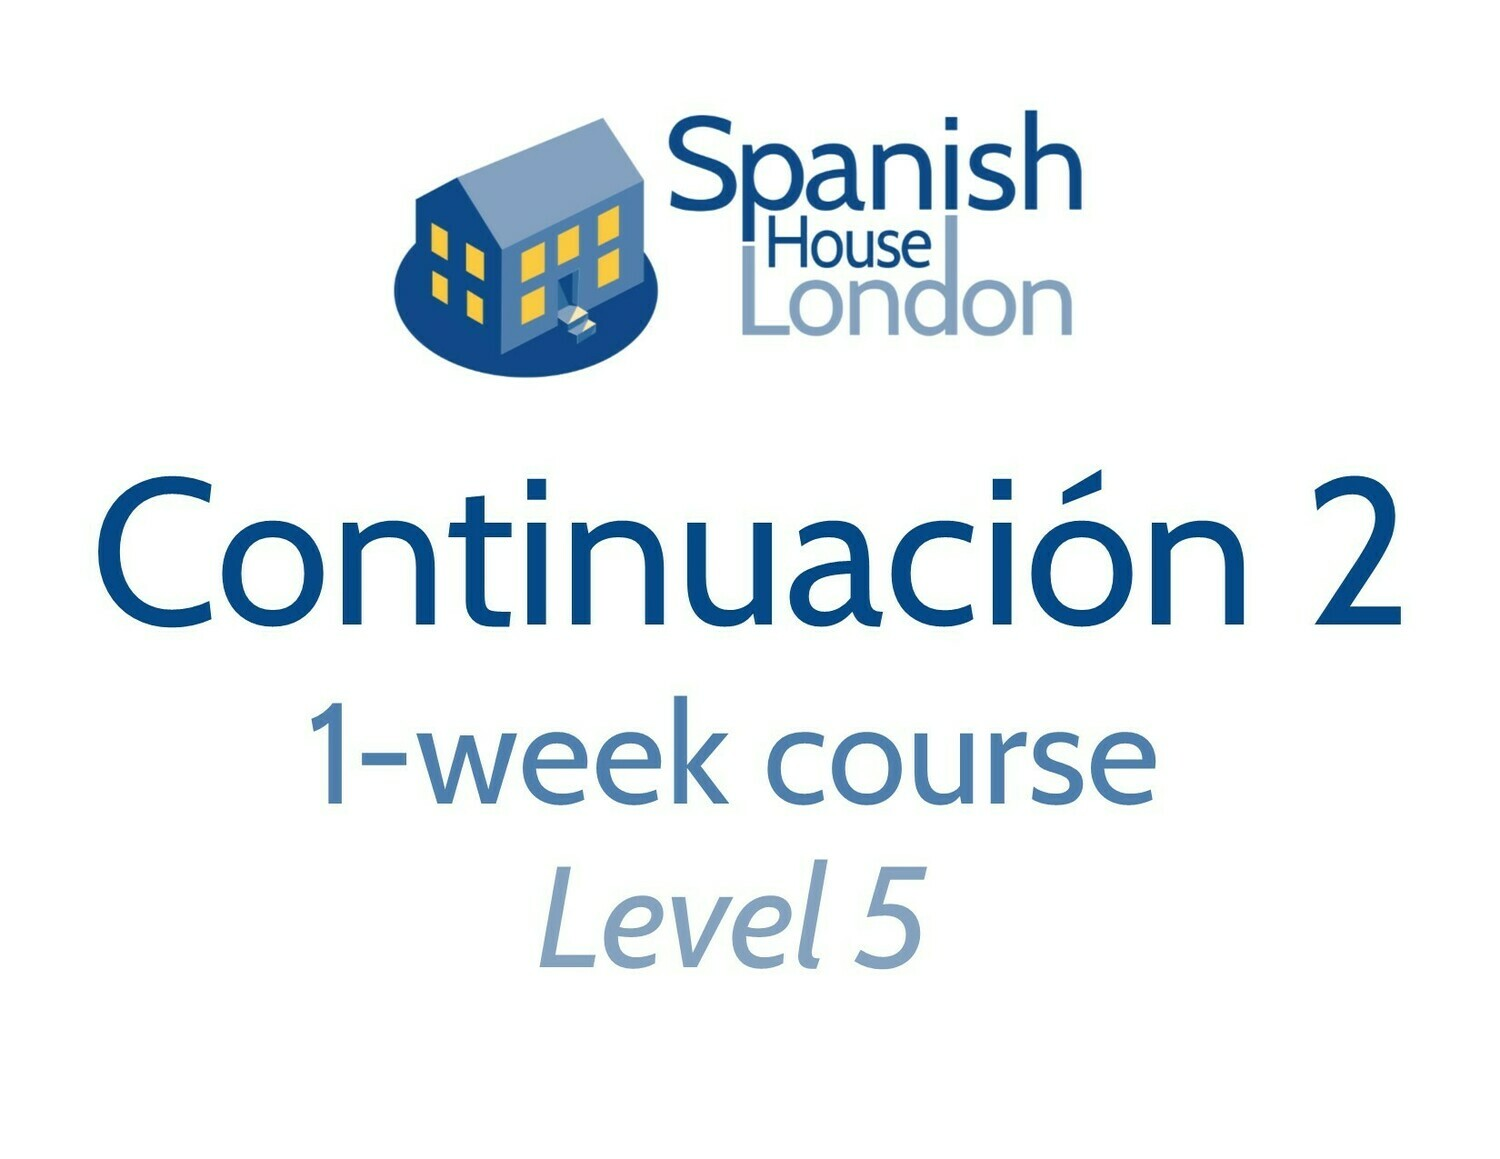 Continuación 2 One-Week Intensive Course starting on 7th October at 10am in Clapham North